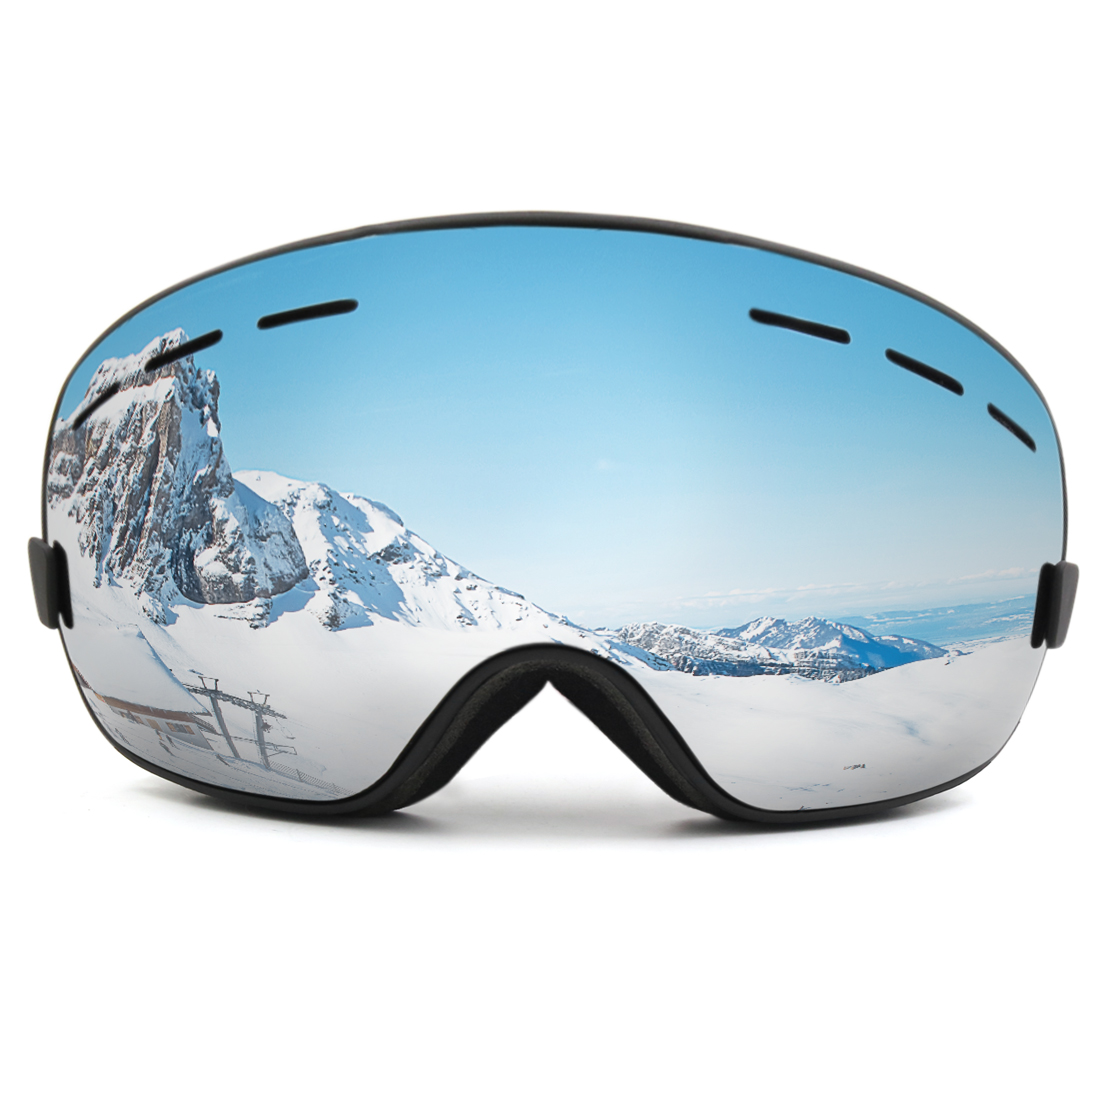 2d95b86852 Snowboard Ski Goggles Anti-fog UV Protect Mirror Lens Glasses ...